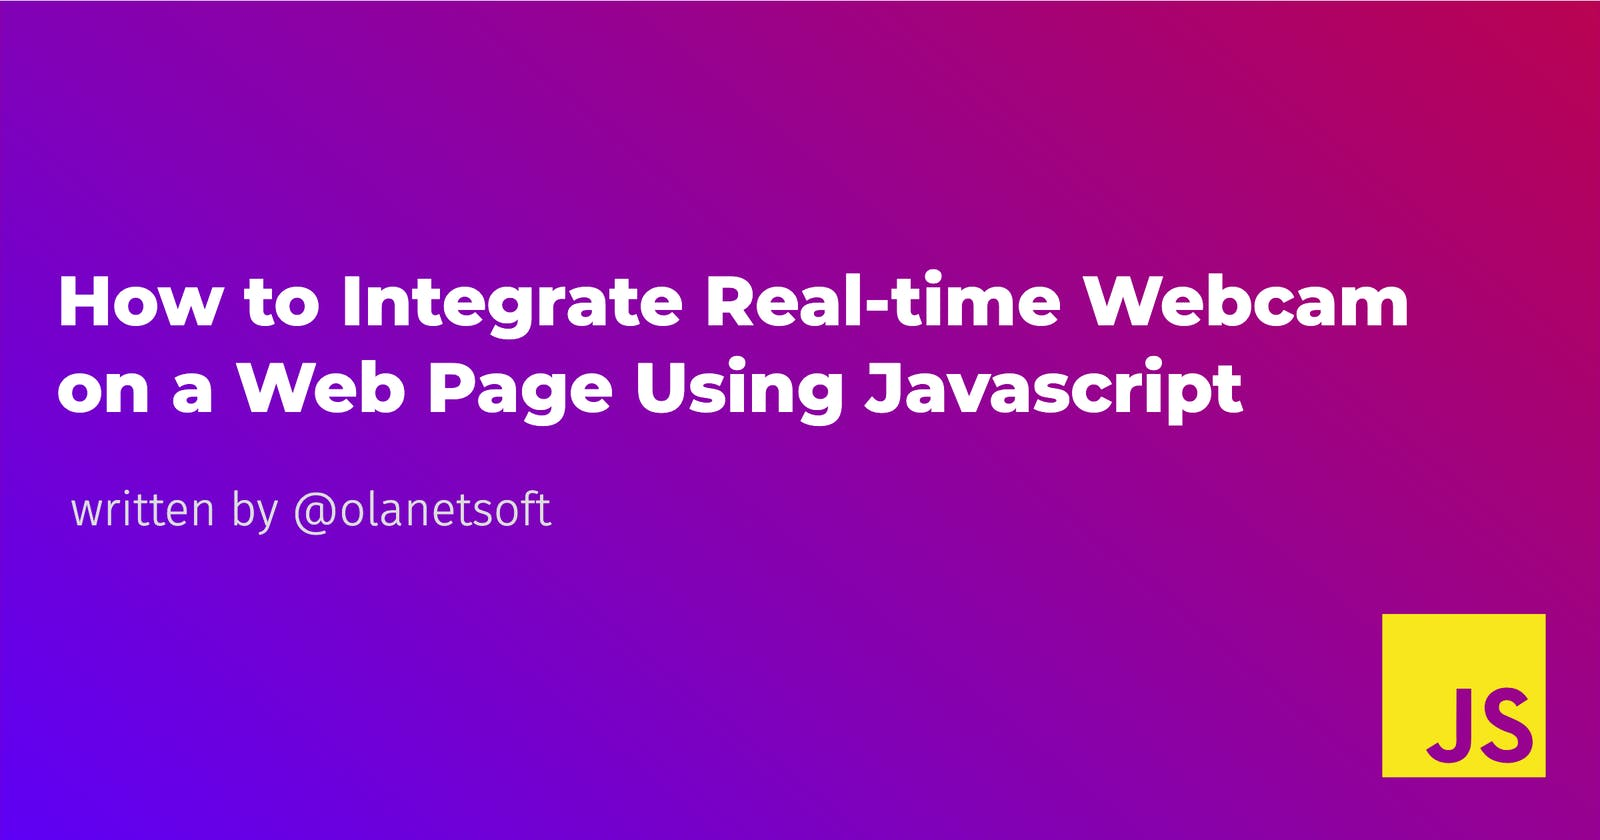 How to Integrate Real-time Webcam on a Web Page Using Javascript